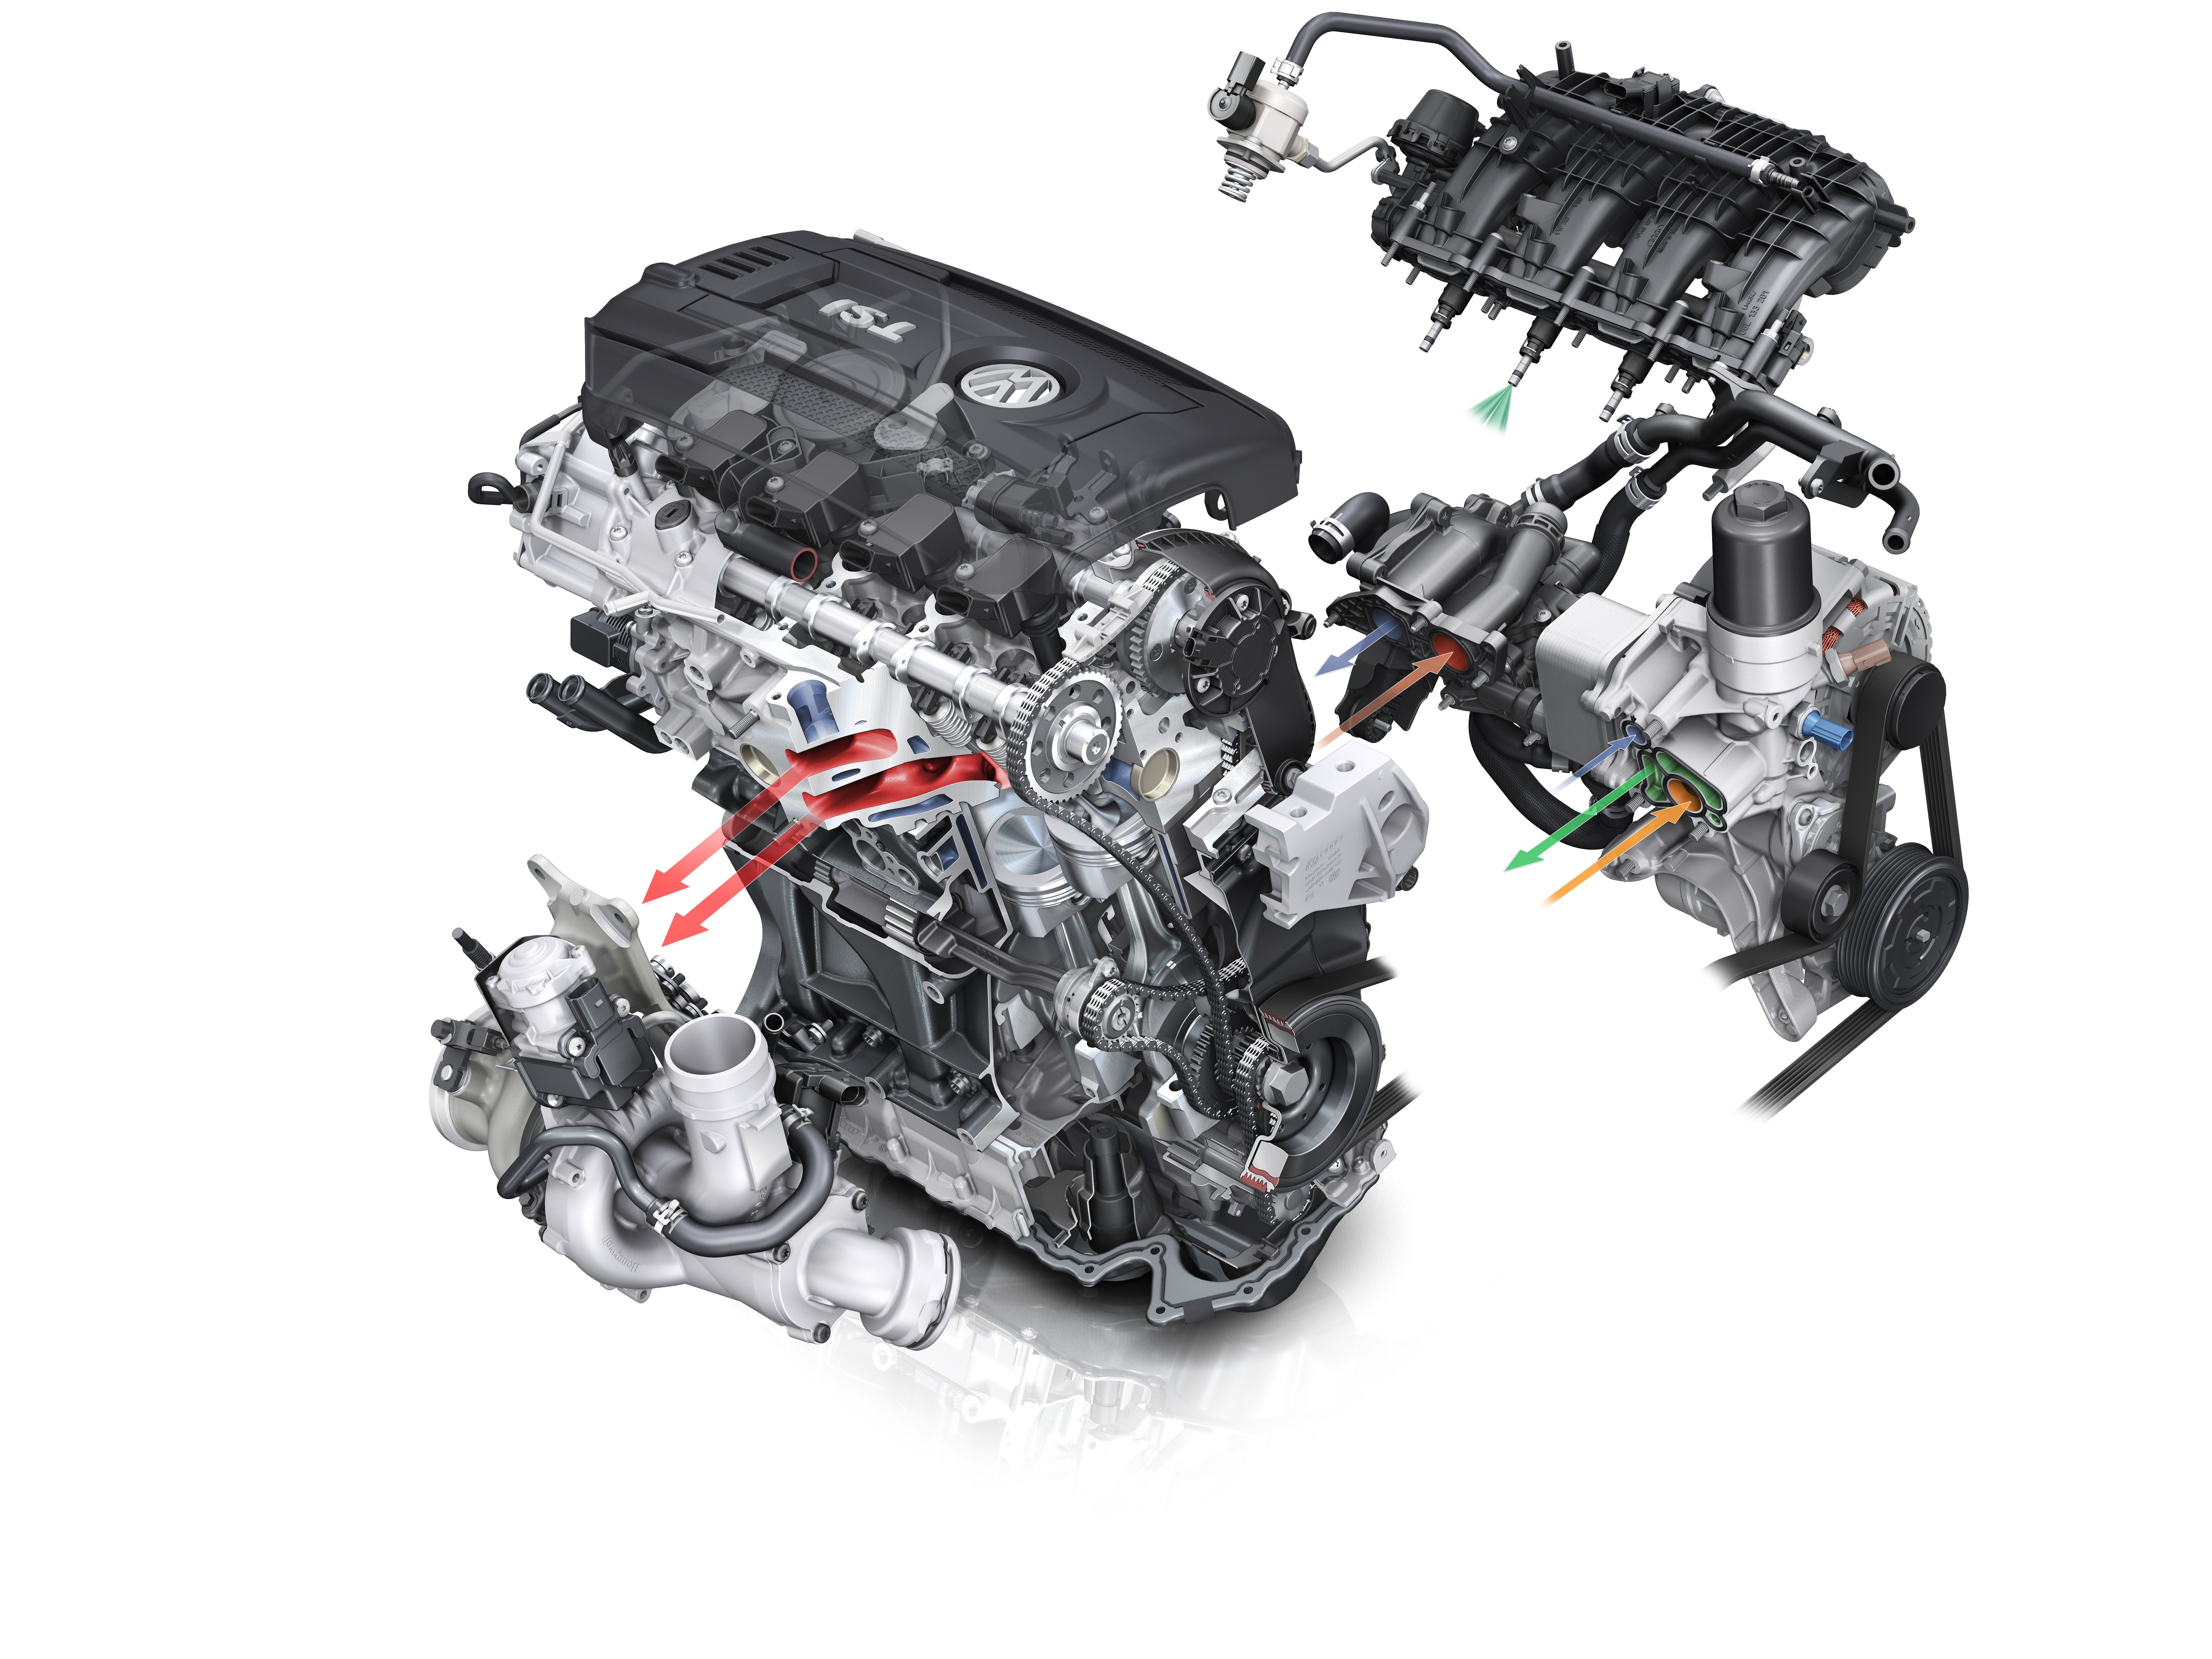 Vw Jetta 2 0 Engine Diagram Volkswagen S Latest Turbocharged Tsi Debuts In The 20 1999